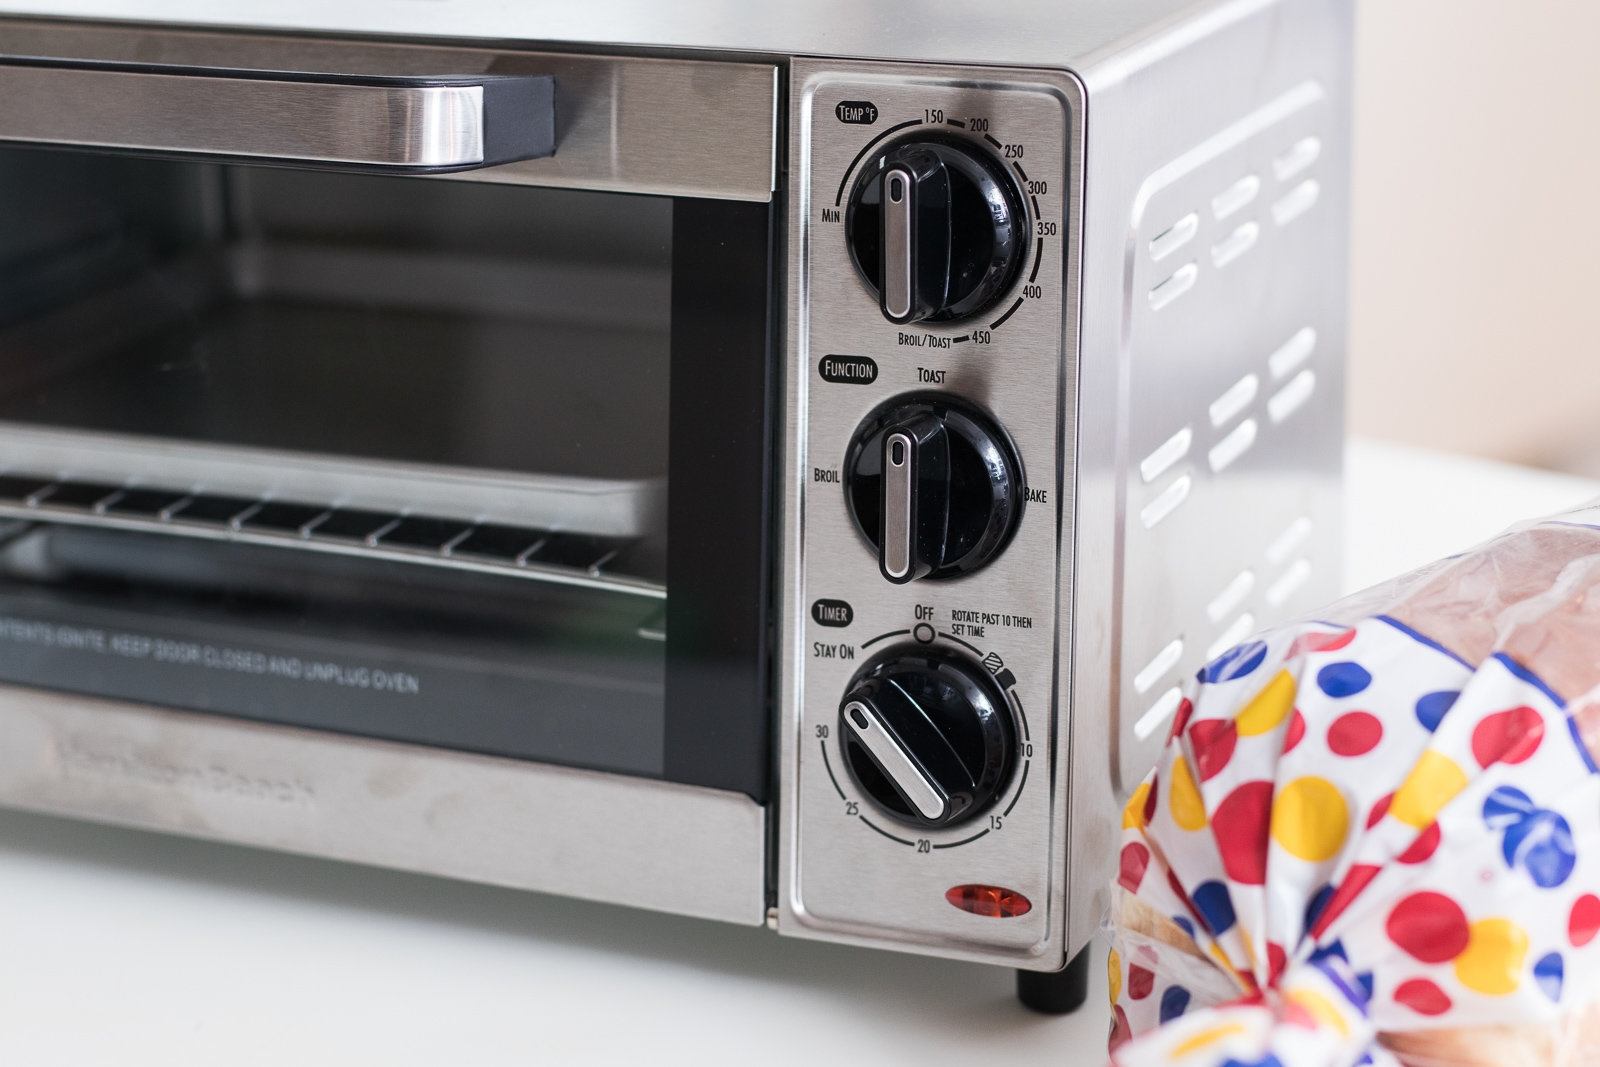 The best toaster oven | DeviceDaily.com